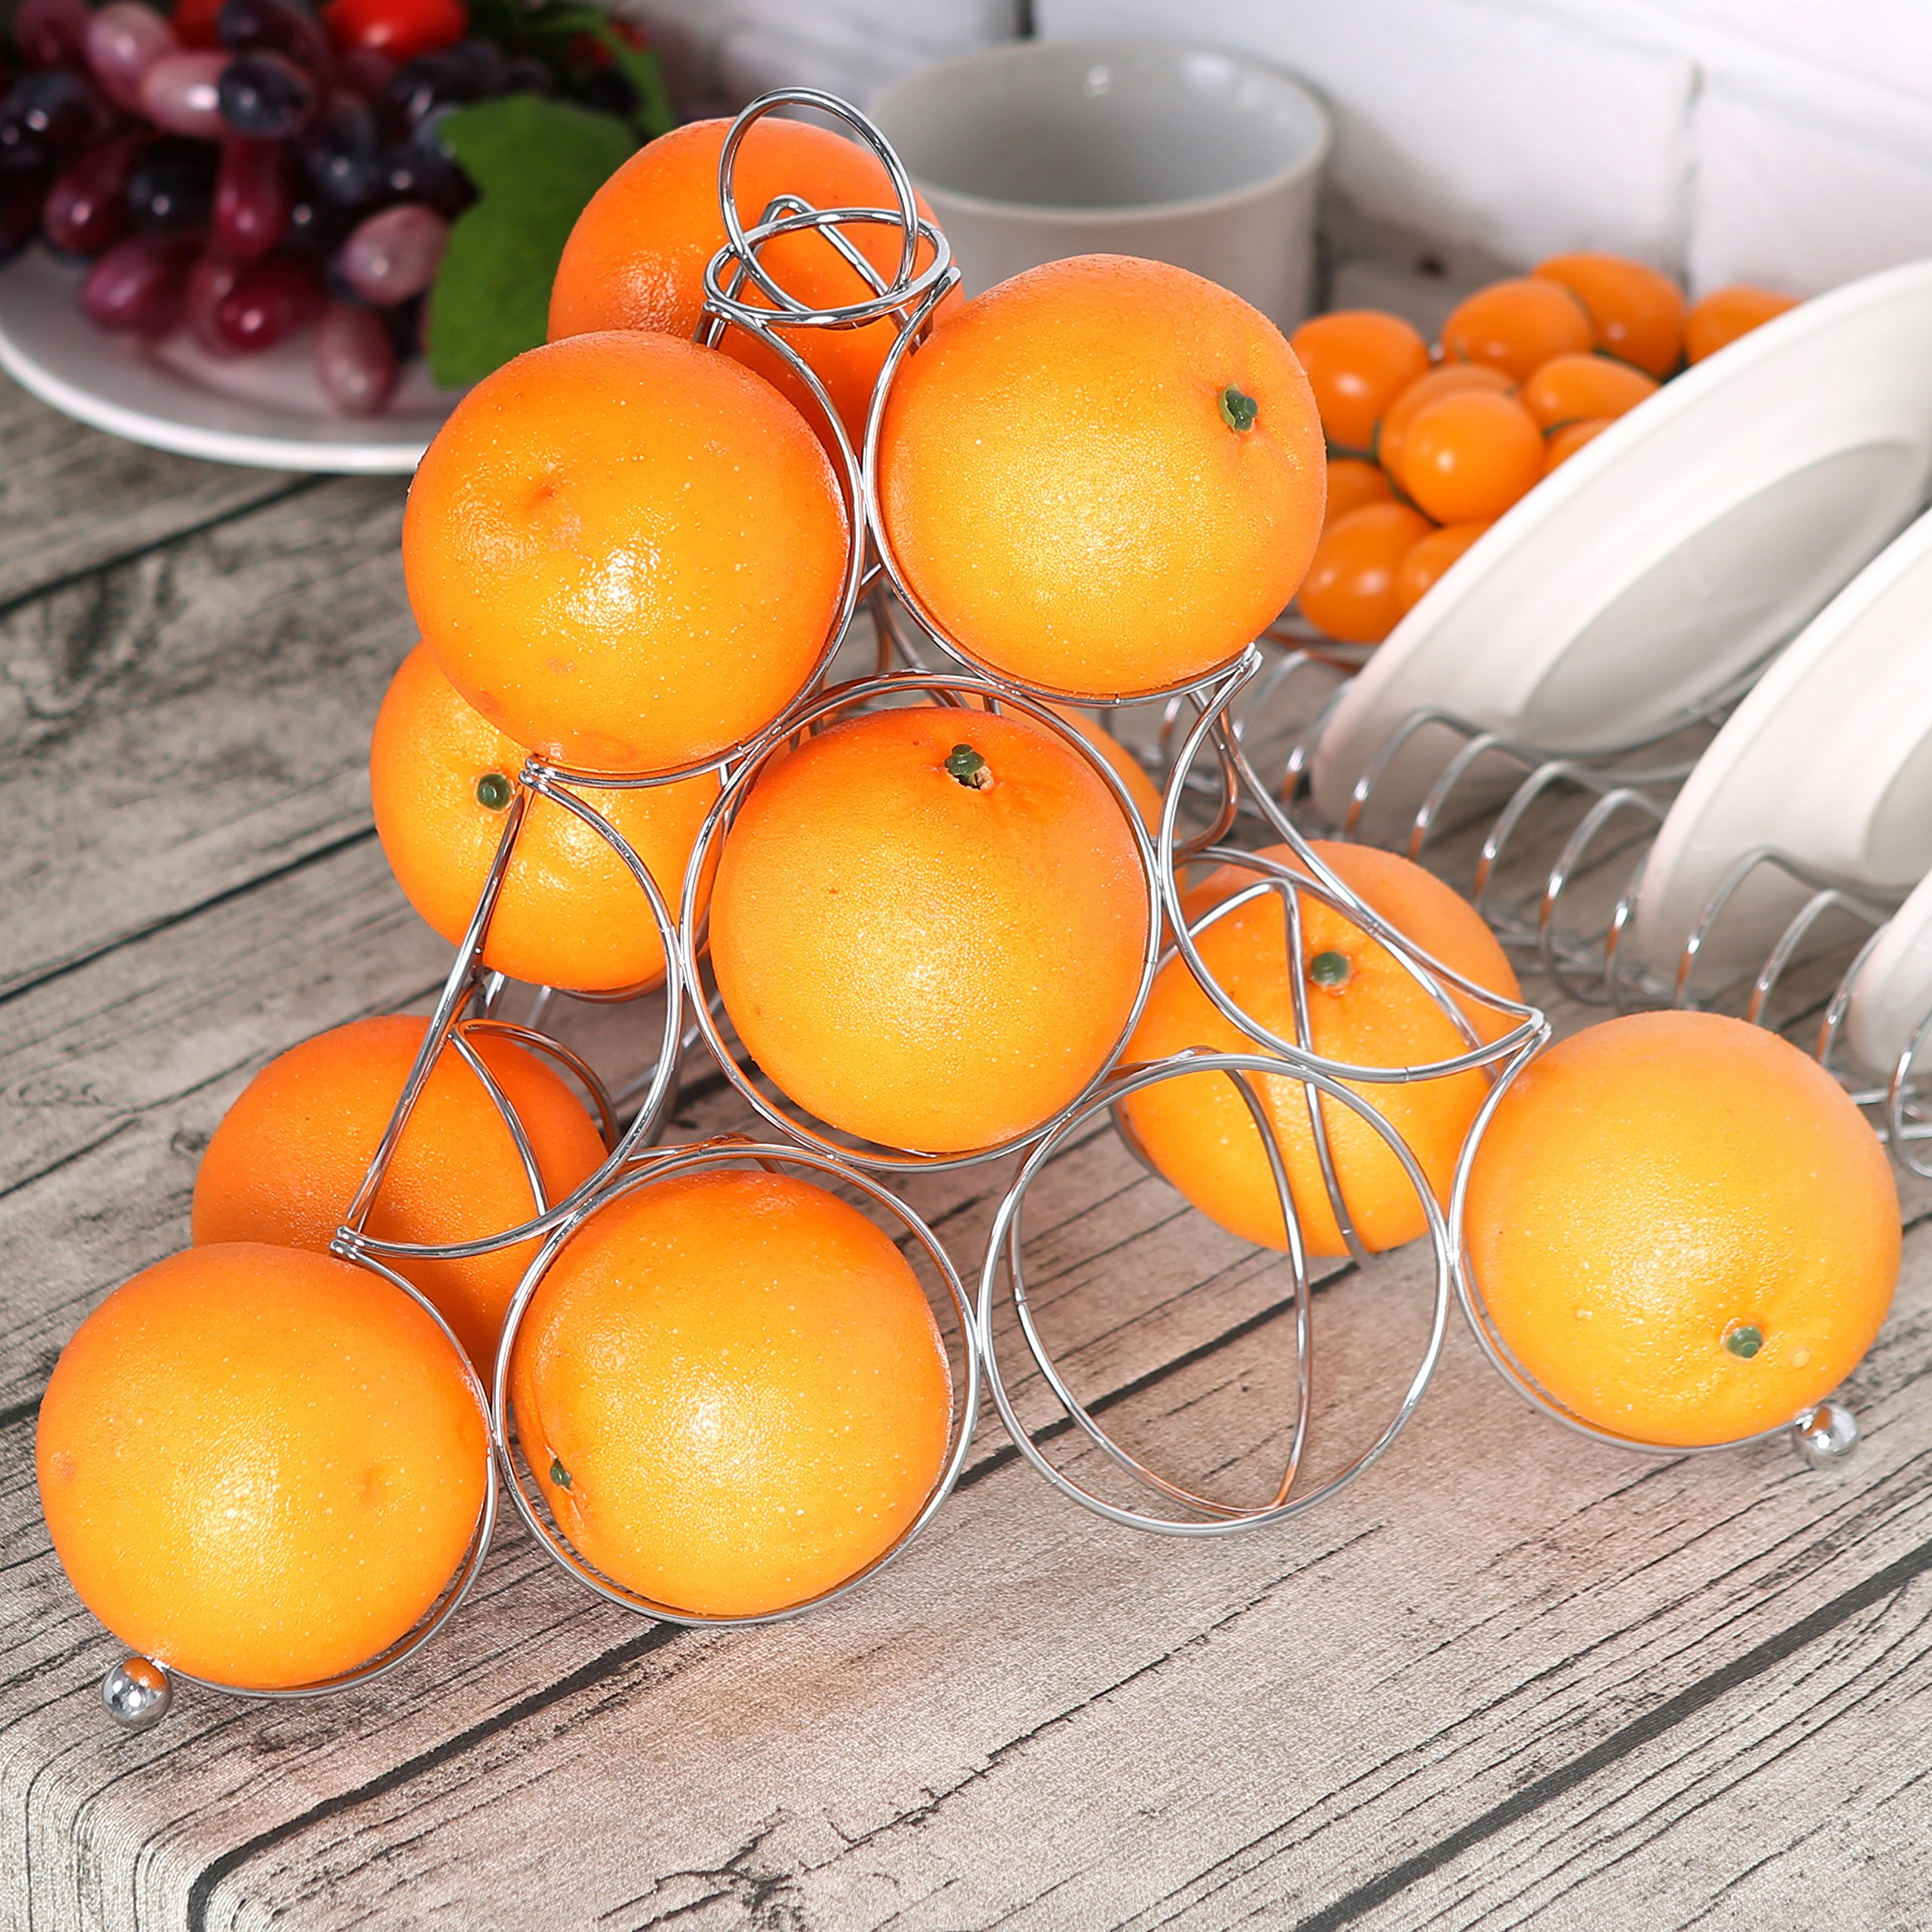 Modern Chrome Pyramid Countertop Fruit Rack, Wire Frame Display Holder, Silver